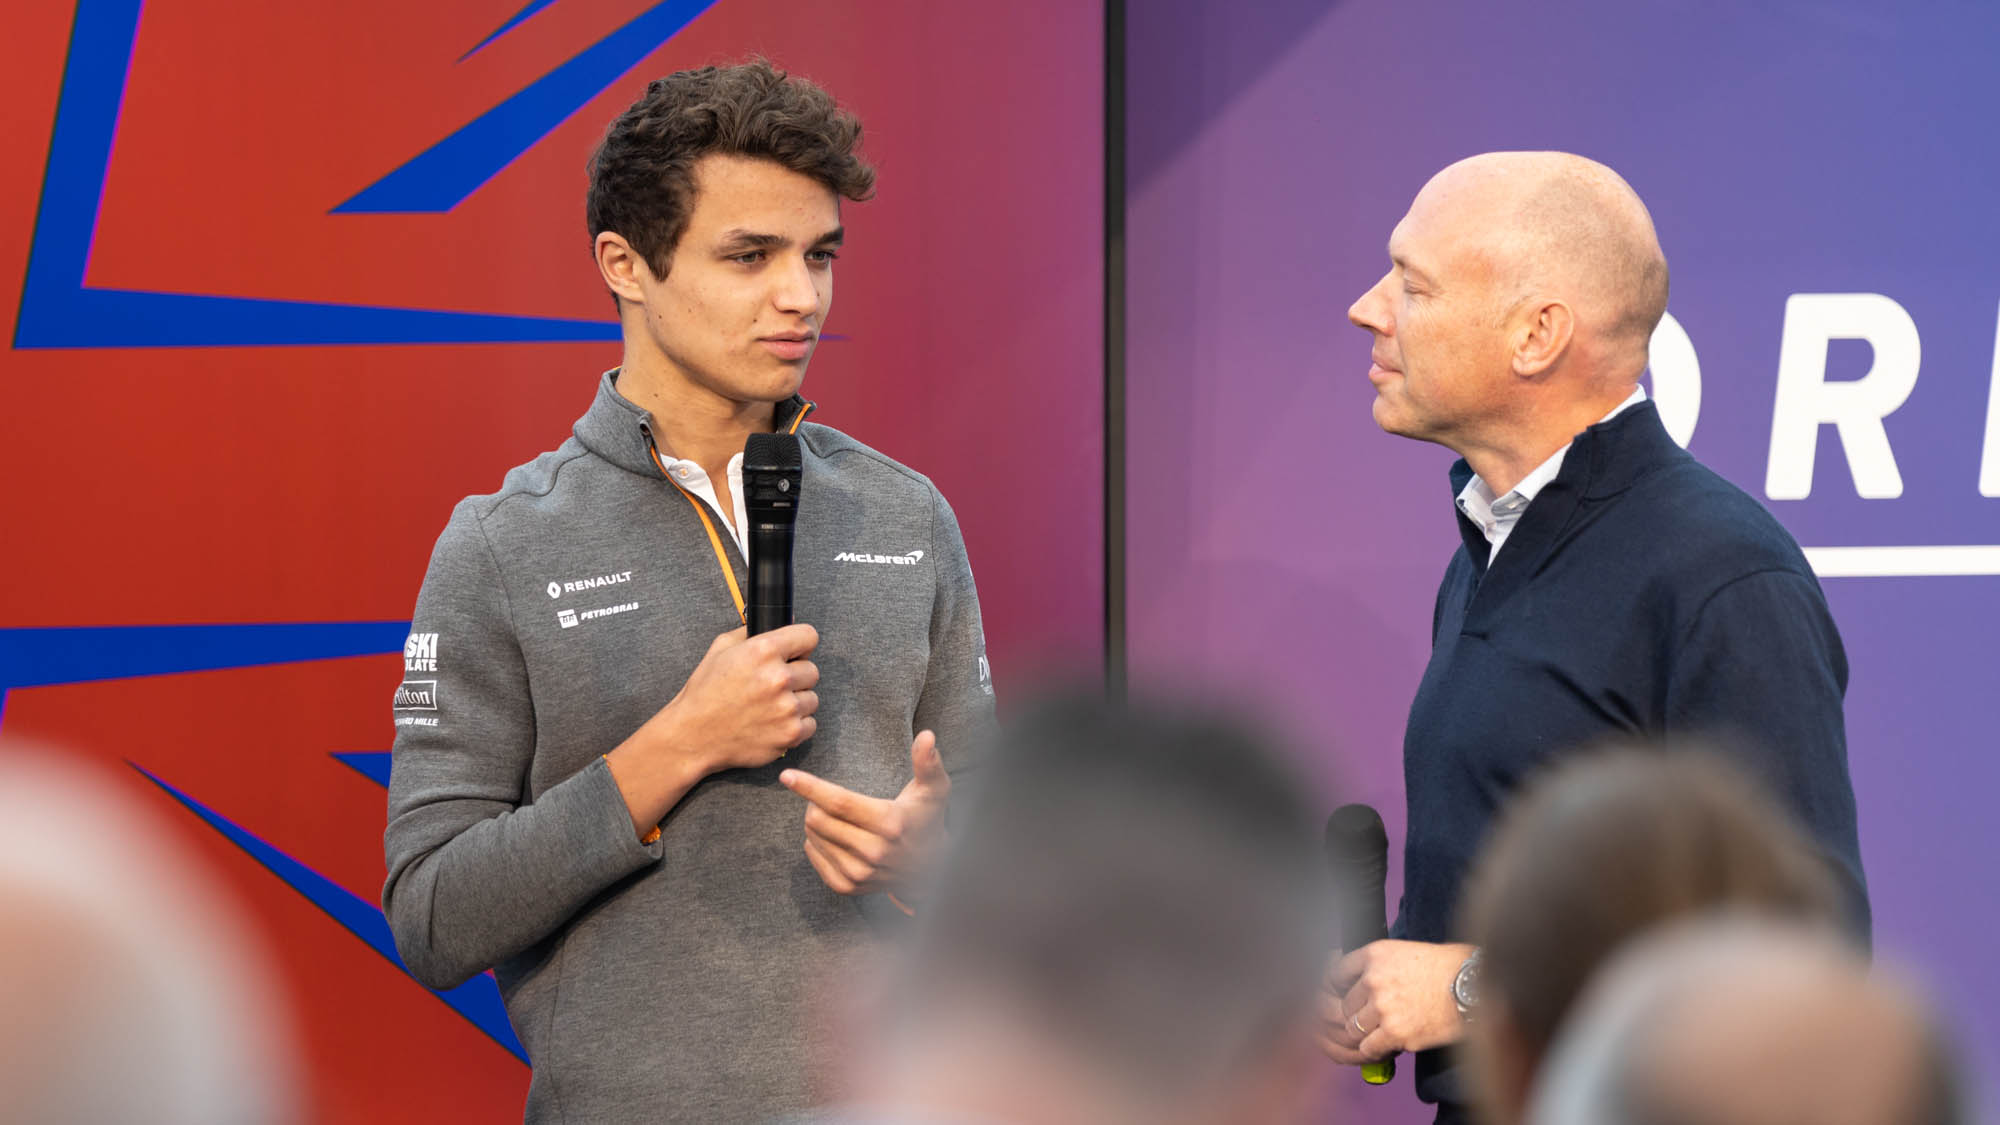 190720_Silverstone_2019_04_Drivers Lounge_Interviews-20.jpg